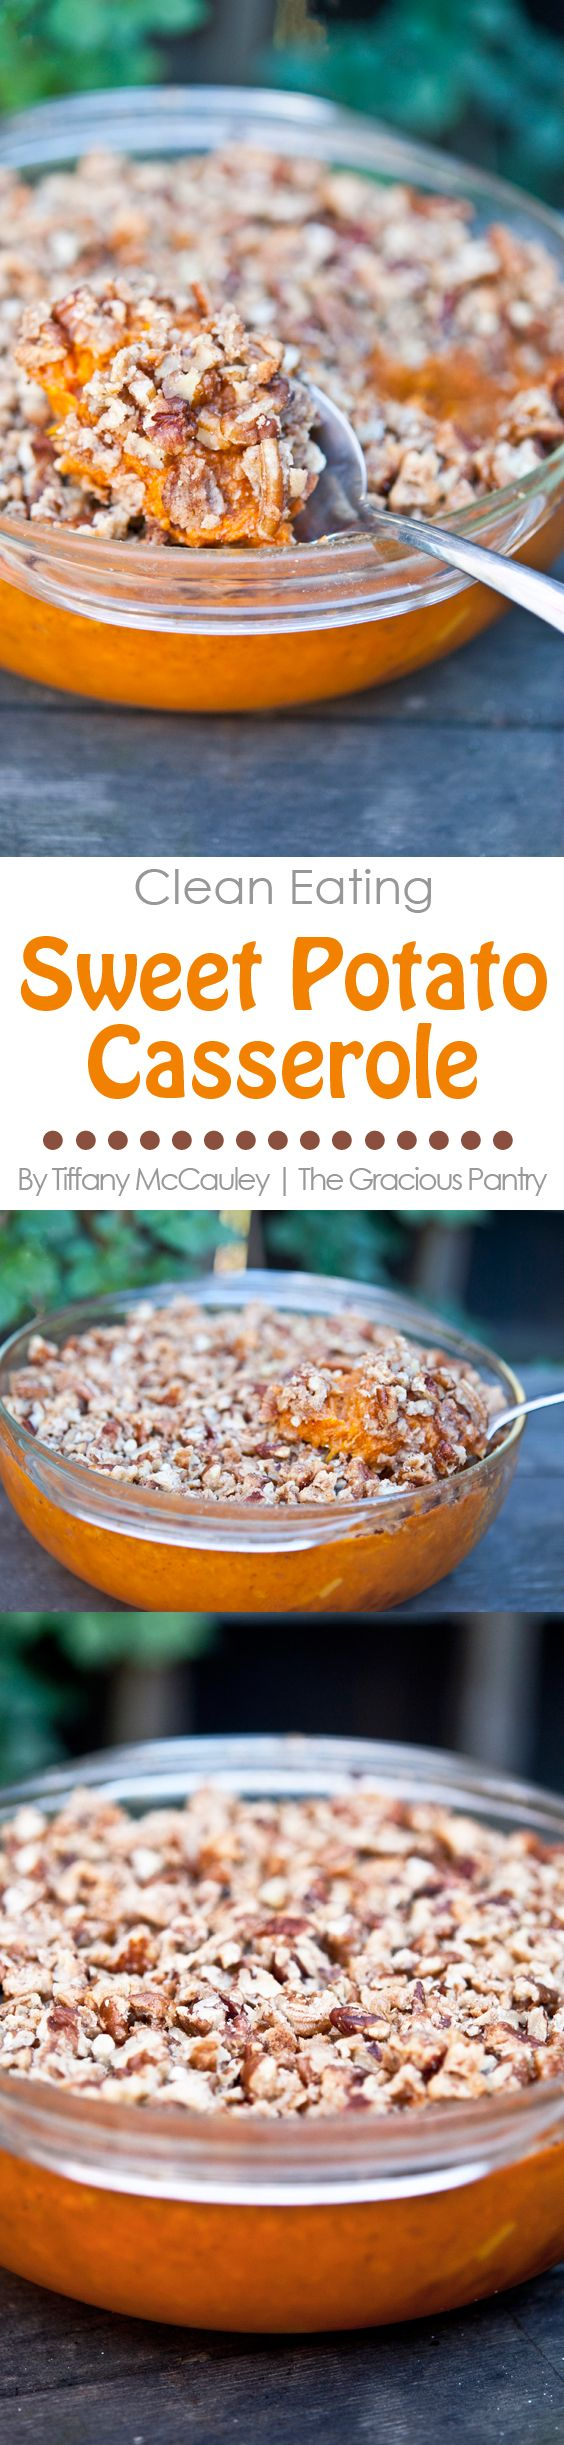 Clean Eating Sweet Potato Casserole is a delicious substitute for the traditional casserole you get on Thanksgiving.